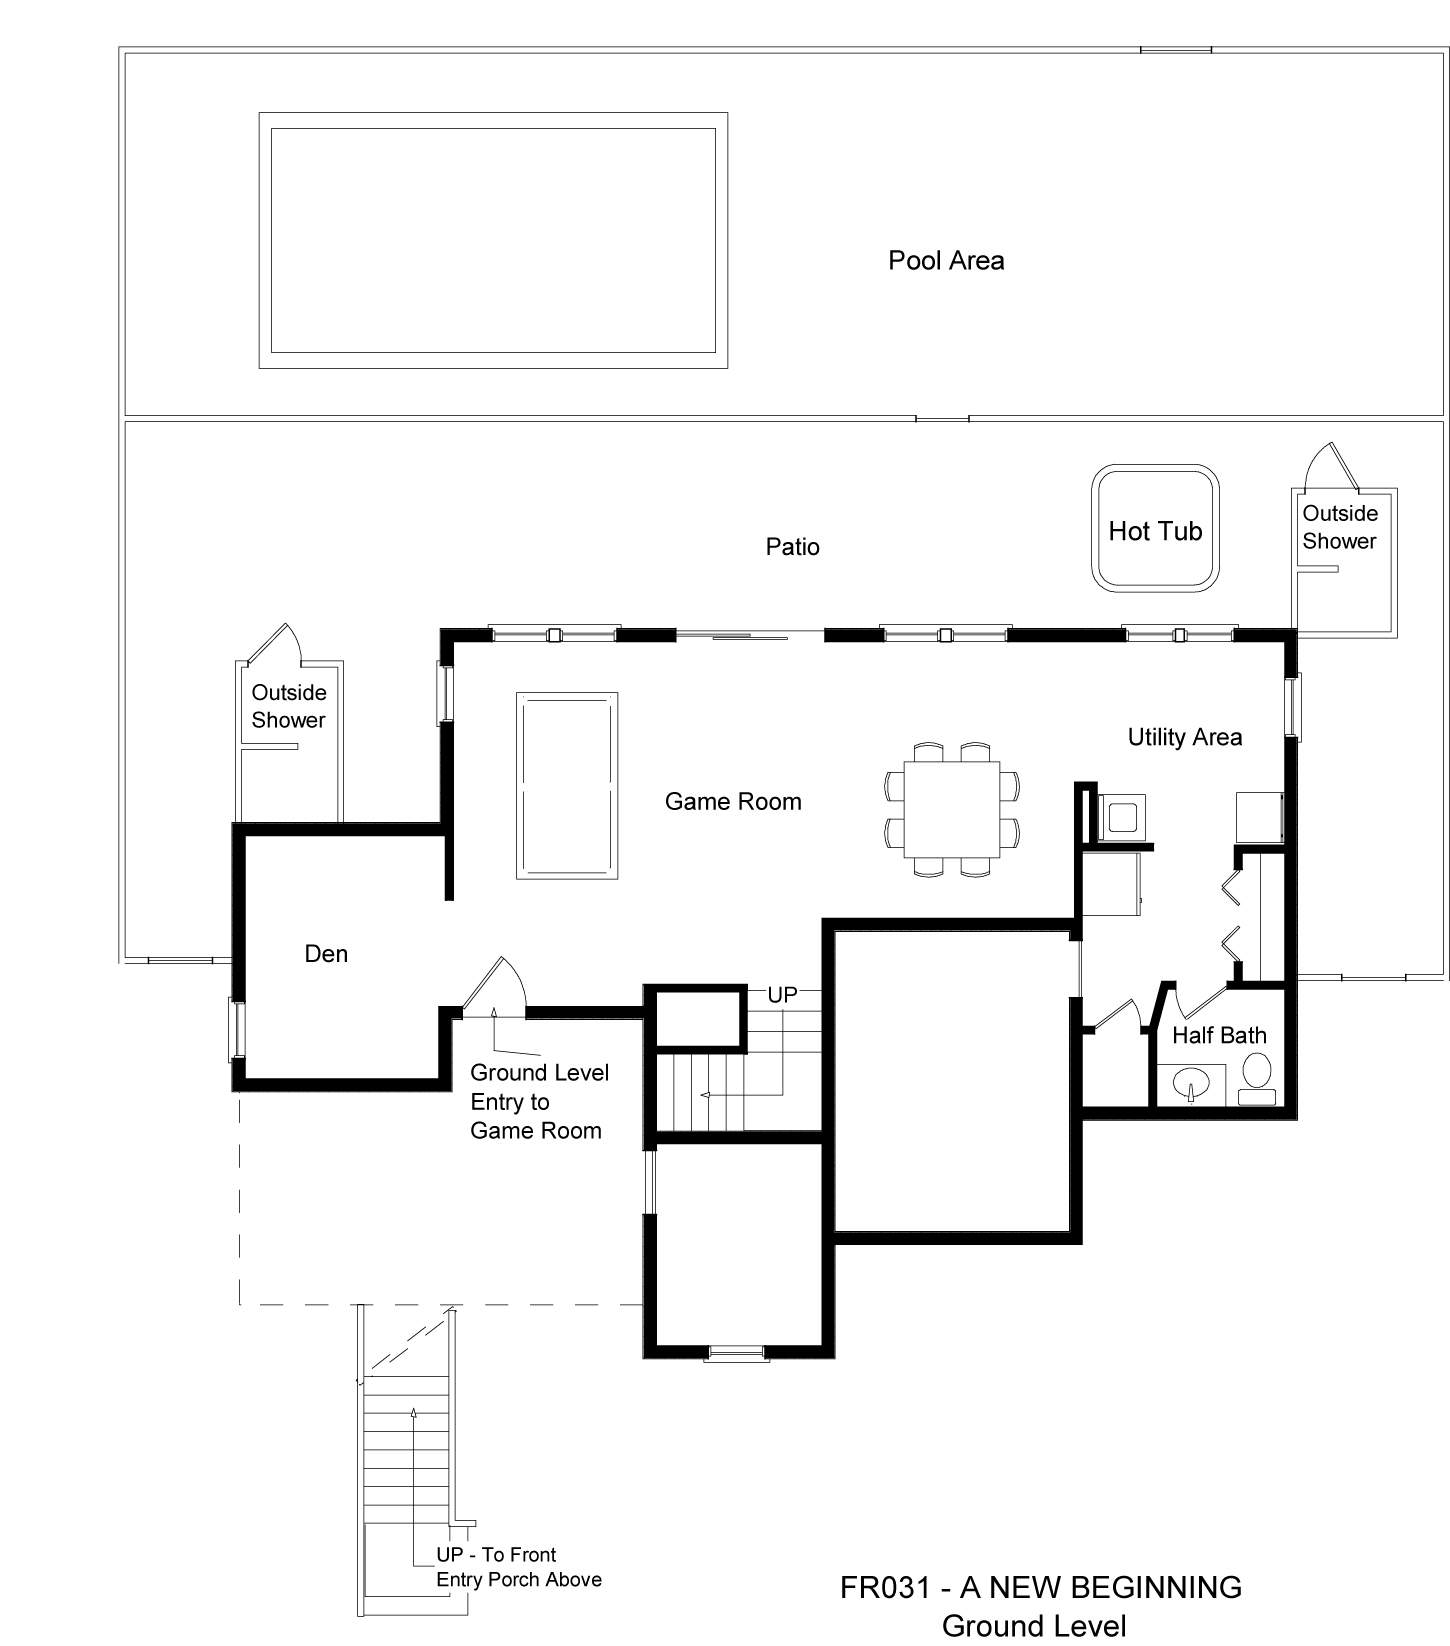 FR031 A New Beginning - Floorplan Level 1